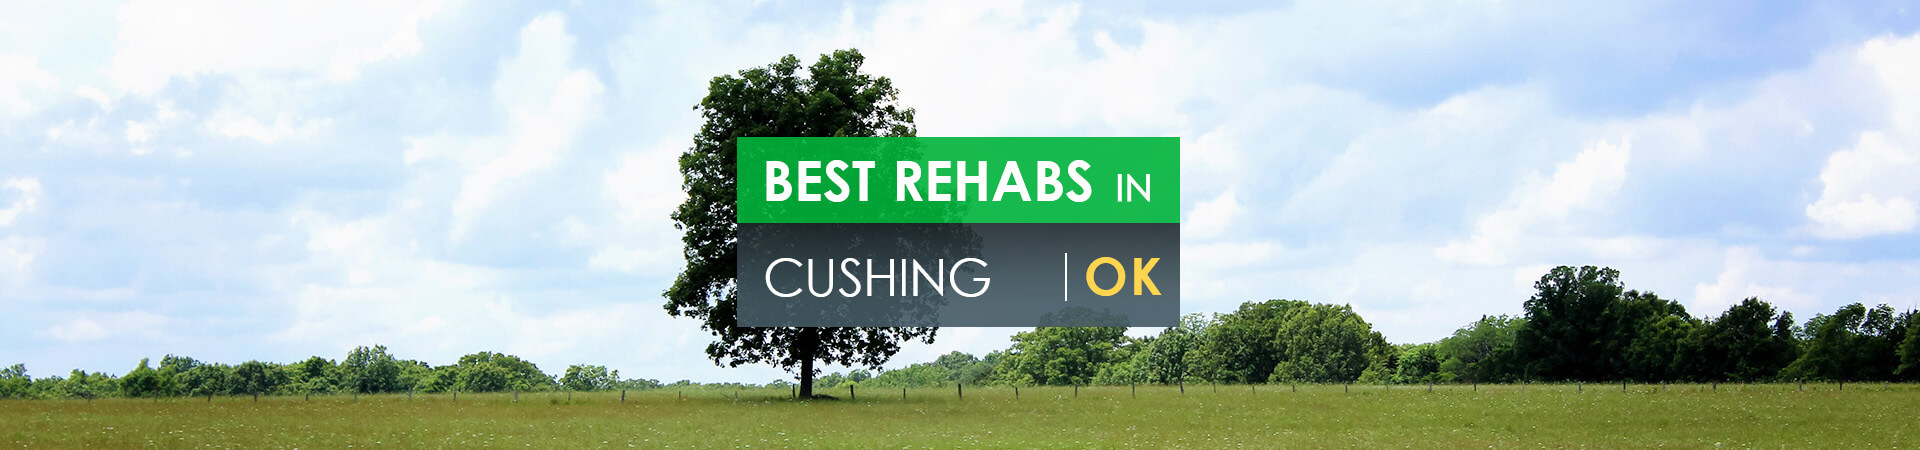 Best rehabs in Cushing, OK